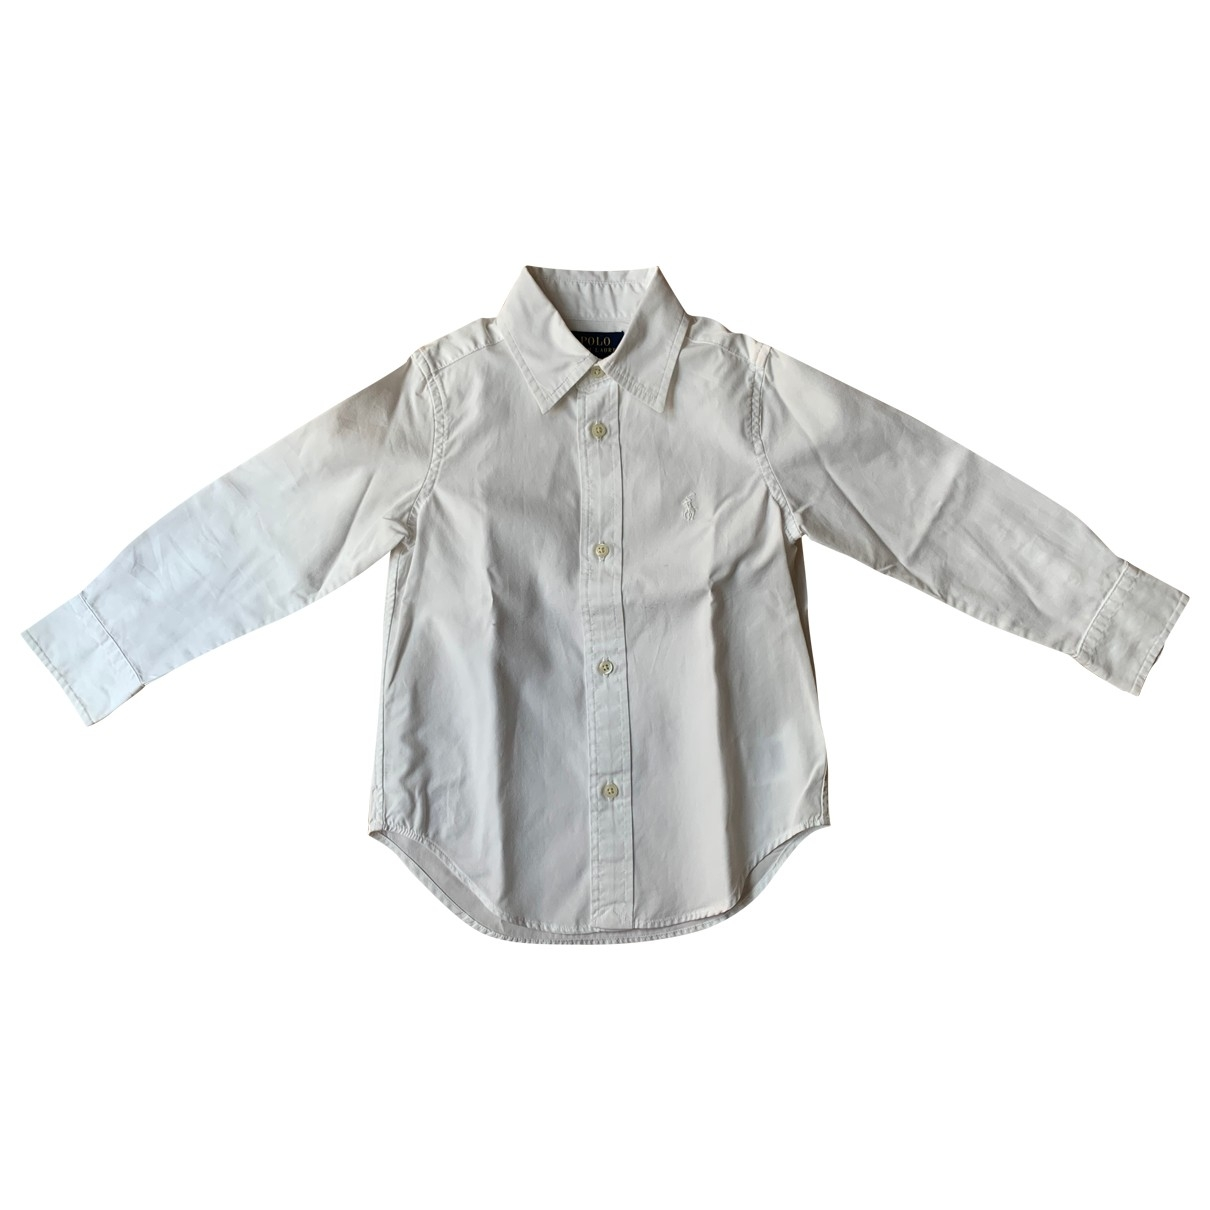 Polo Ralph Lauren \N White Cotton  top for Kids 3 years - up to 98cm FR